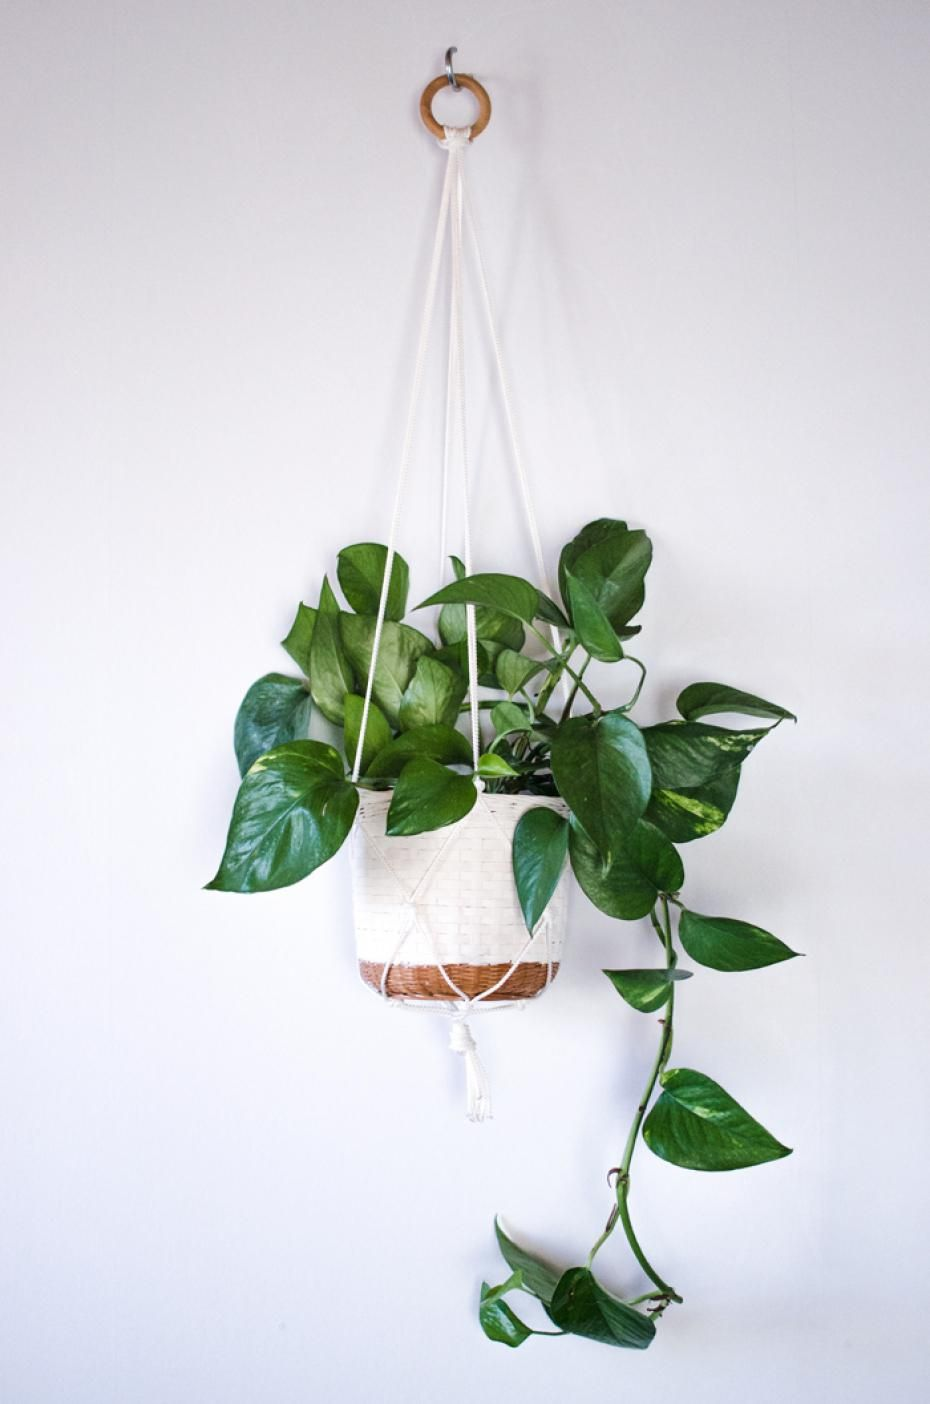 What Are The Best Office Plants Top Plants For Your Desk With Images Hanging Plants Indoor Hanging Plants Plant Decor